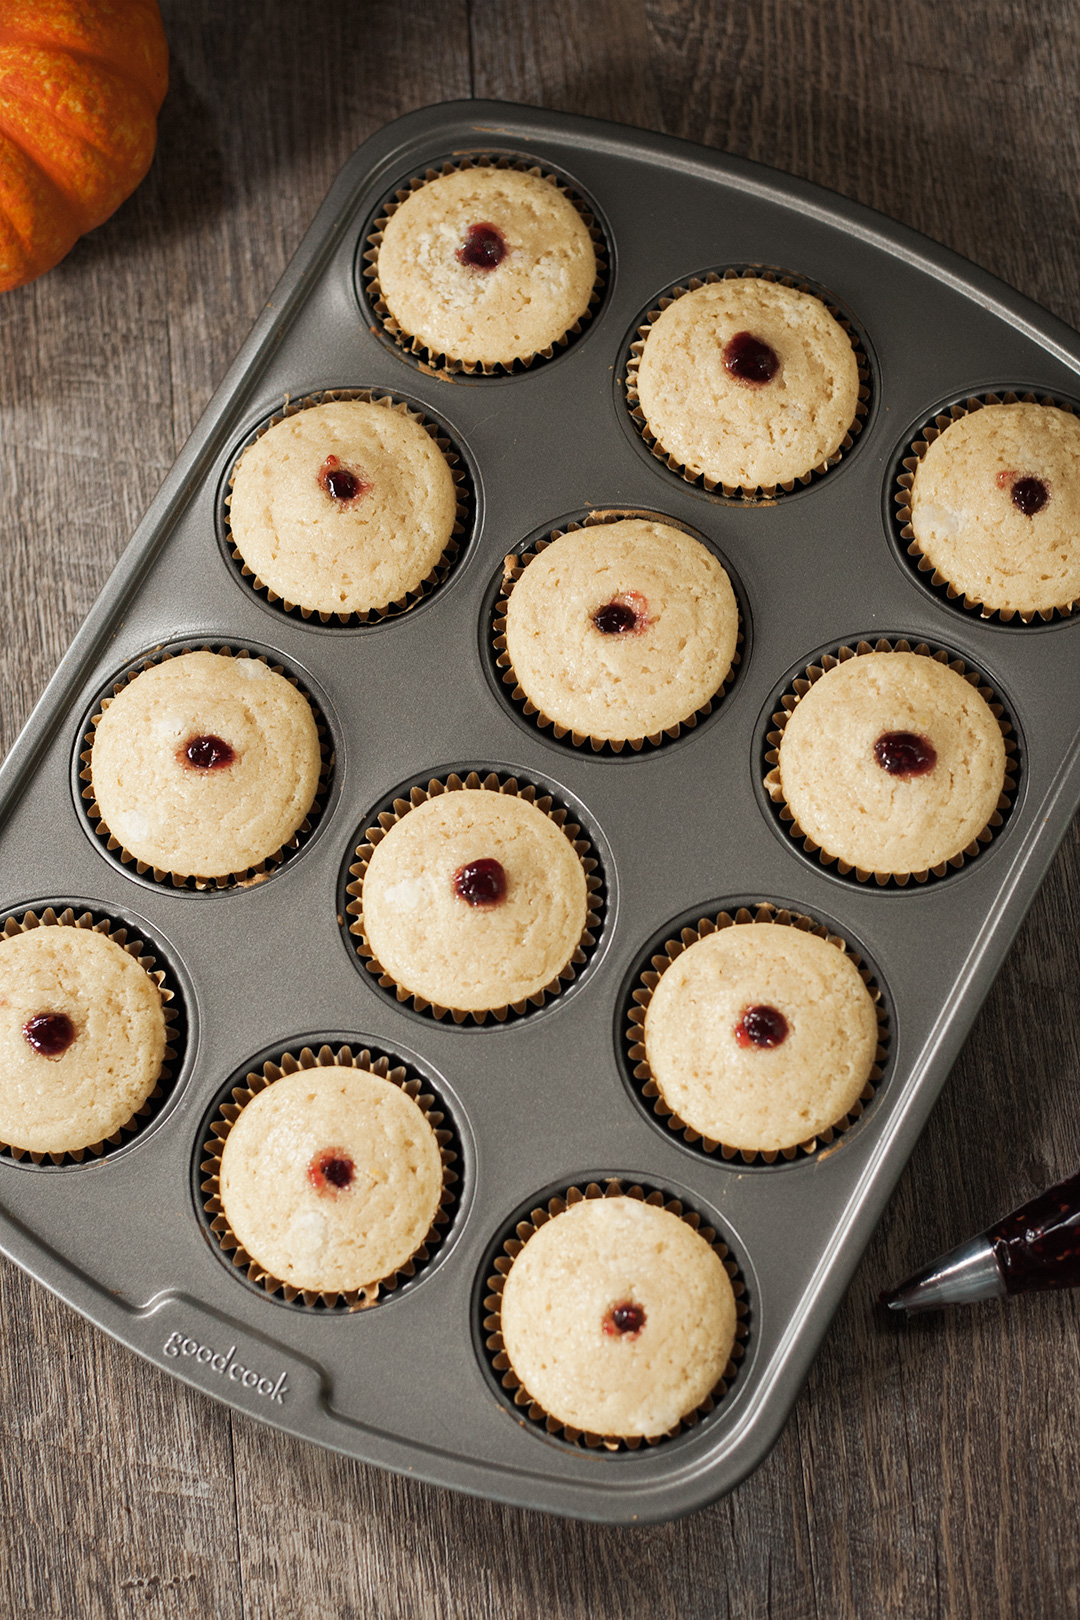 A whole batch of vegan cupcakes with filling.